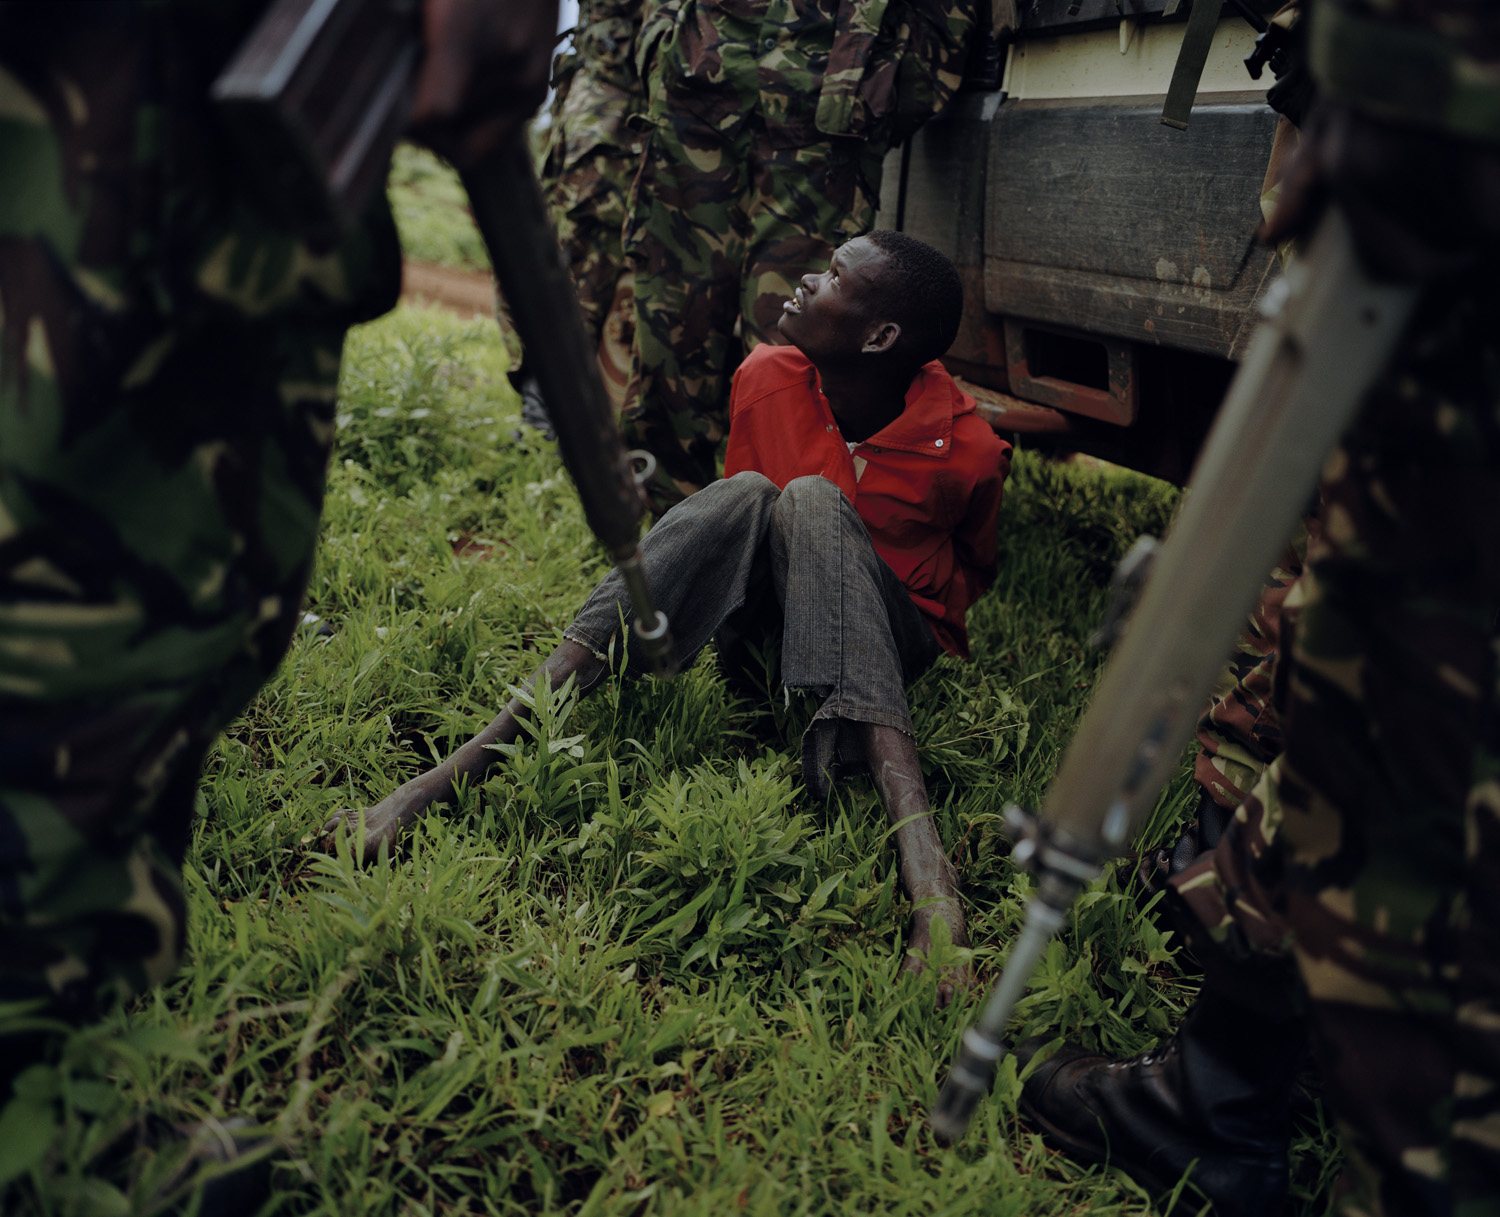 A poacher is interrogated by members of KWS and the community conservancy anti poaching unit '9.2'.                                                                      Part of a team intent on poaching, possibly the youngest and most inexperienced of the group, he was found by the teams blood hounds breathing through a reed, under the surface of a river. He will almost certainly spend a considerable amount of time in prison. The others escaped.